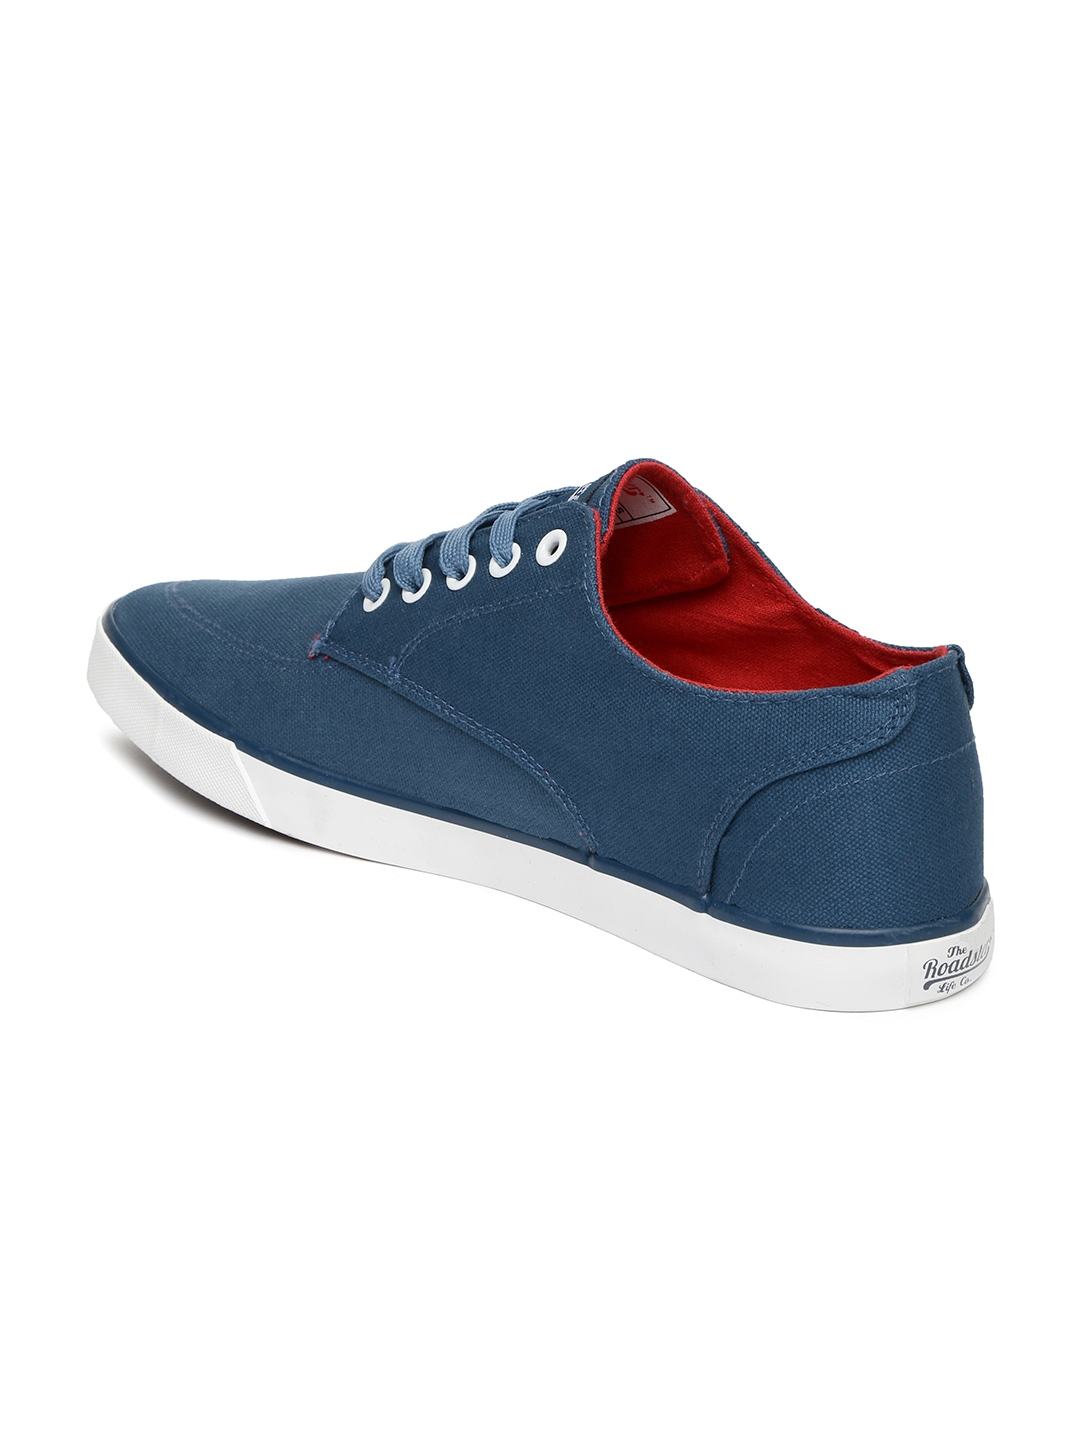 myntra roadster blue casual shoes 733601 buy myntra